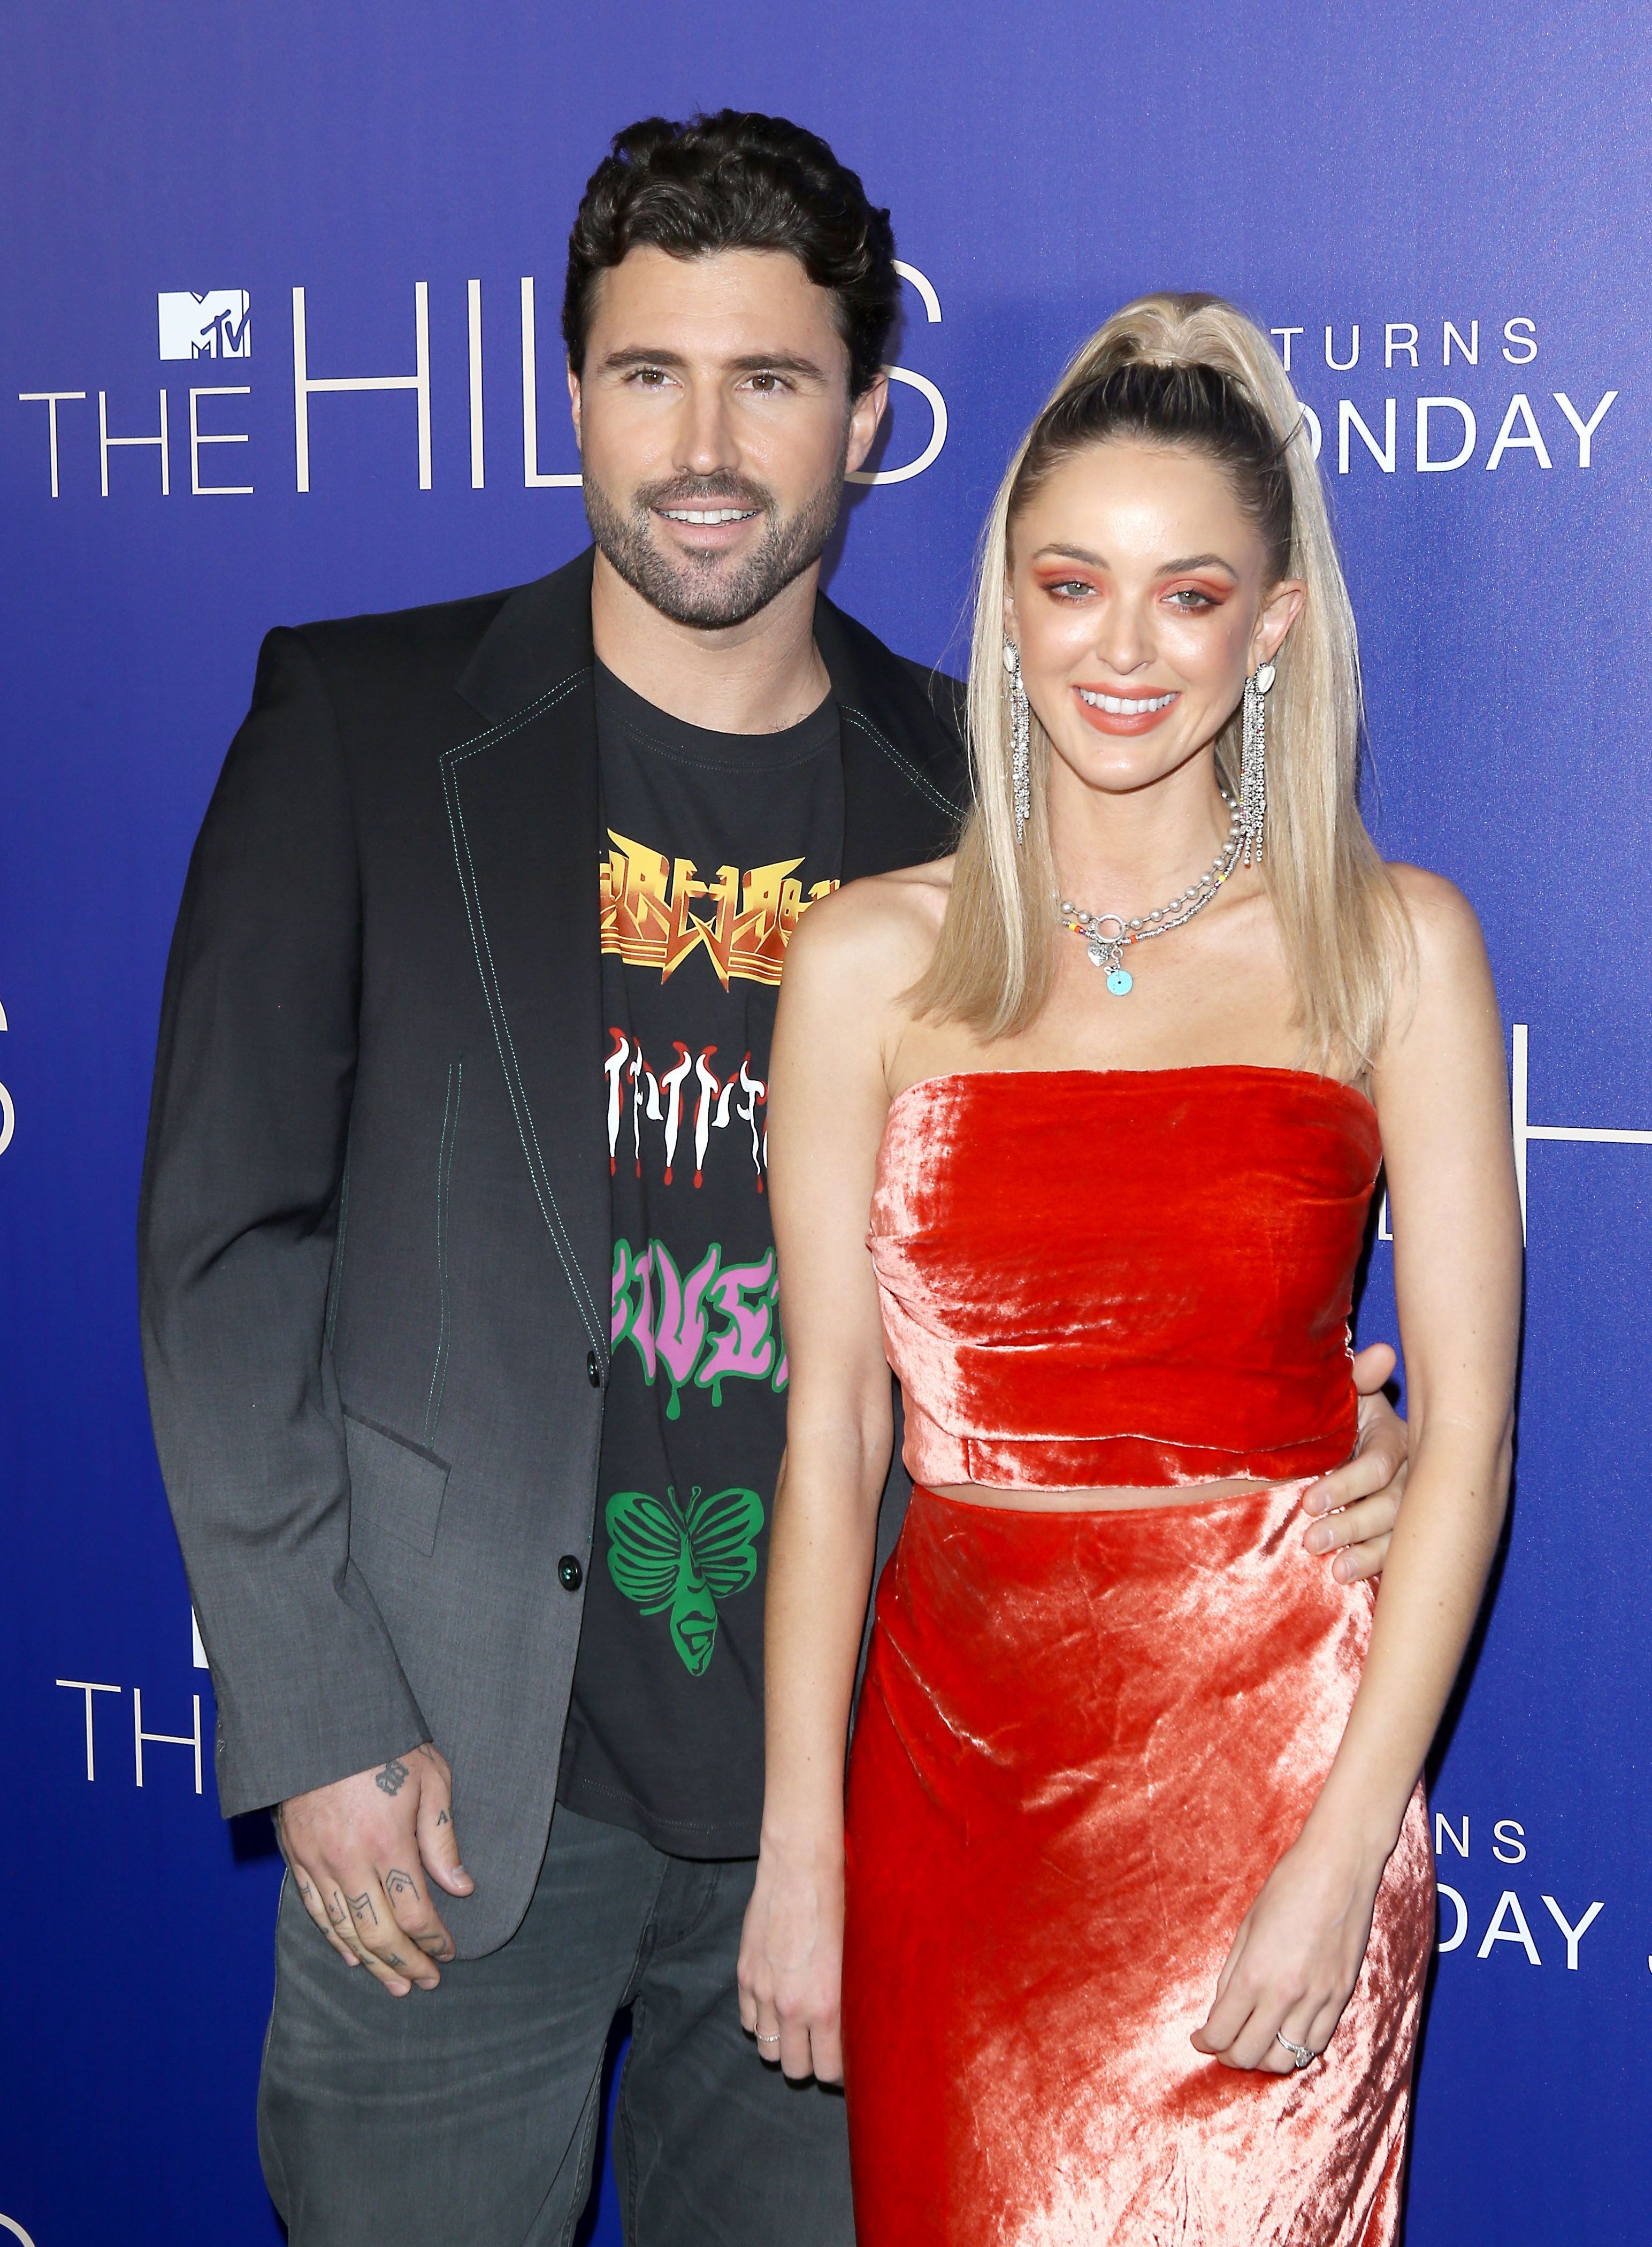 Brody Jenner set the story straight about his ex Kaitlynn Carter and Miley Cyrus